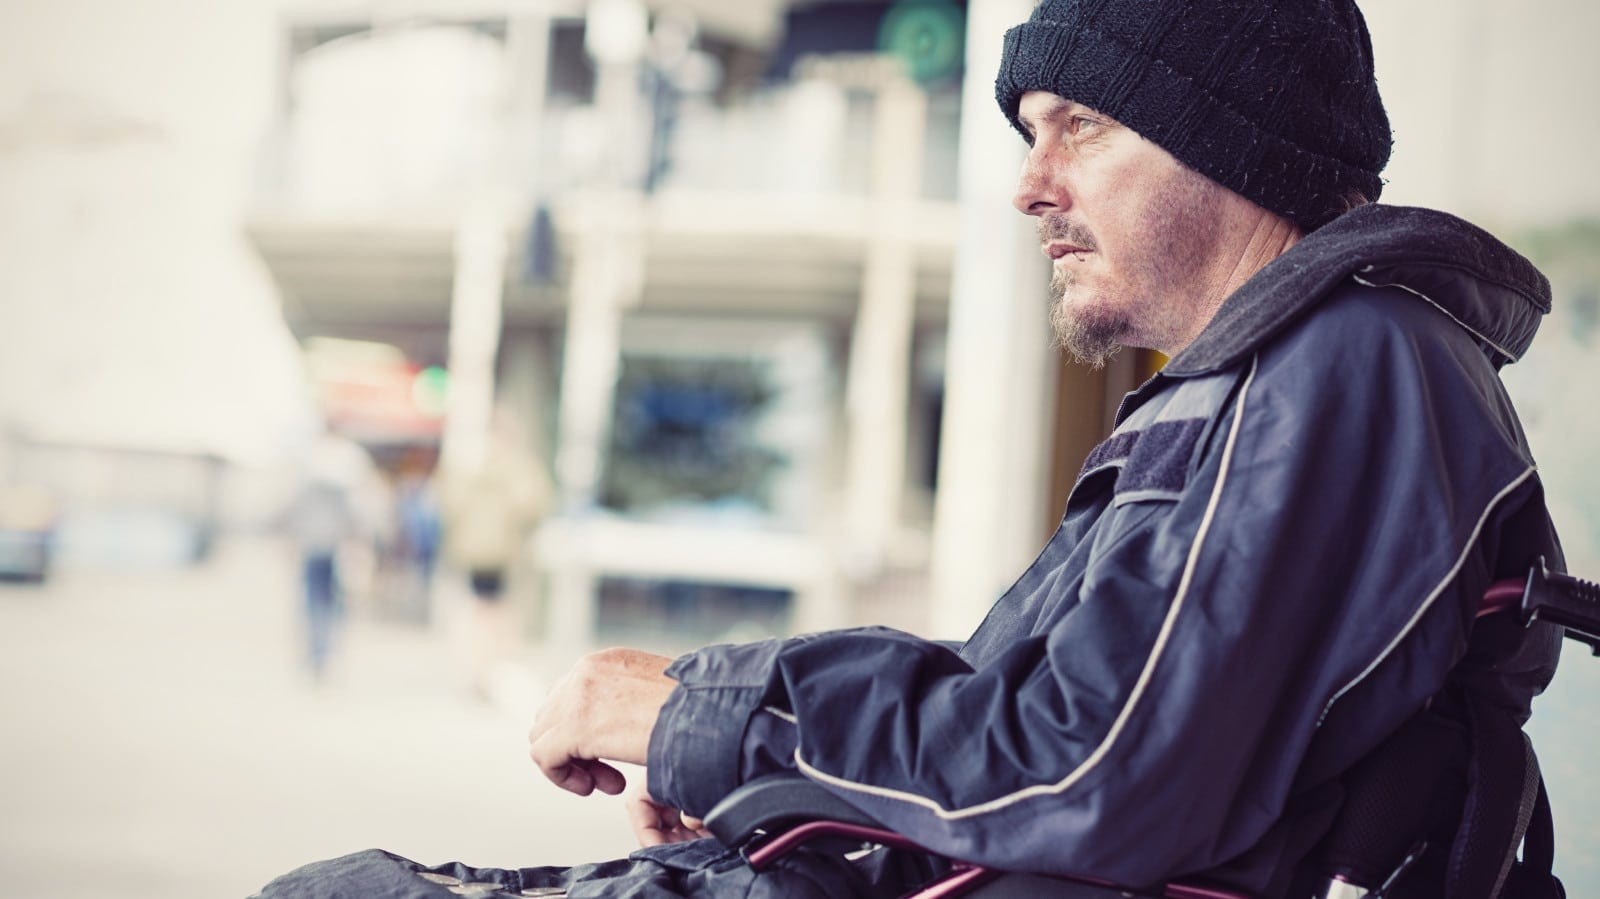 Disabled Man Sitting In Wheelchair Outdoors Stock Photo